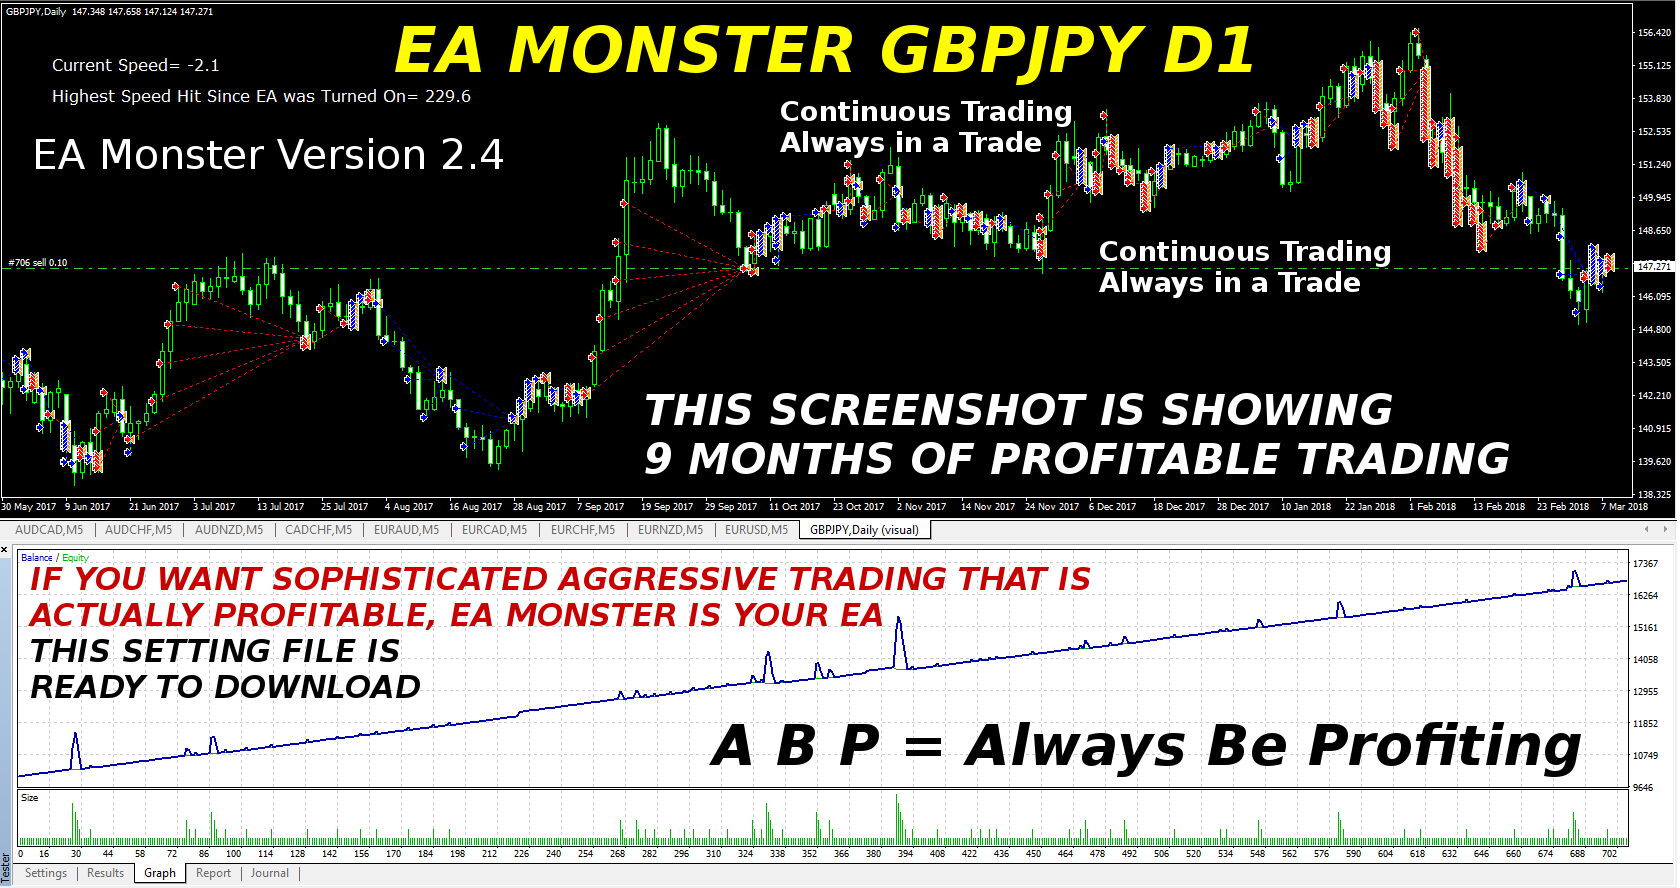 EA-MONSTER-9-MONTHS-OF TRADING-GBPJPY-D1